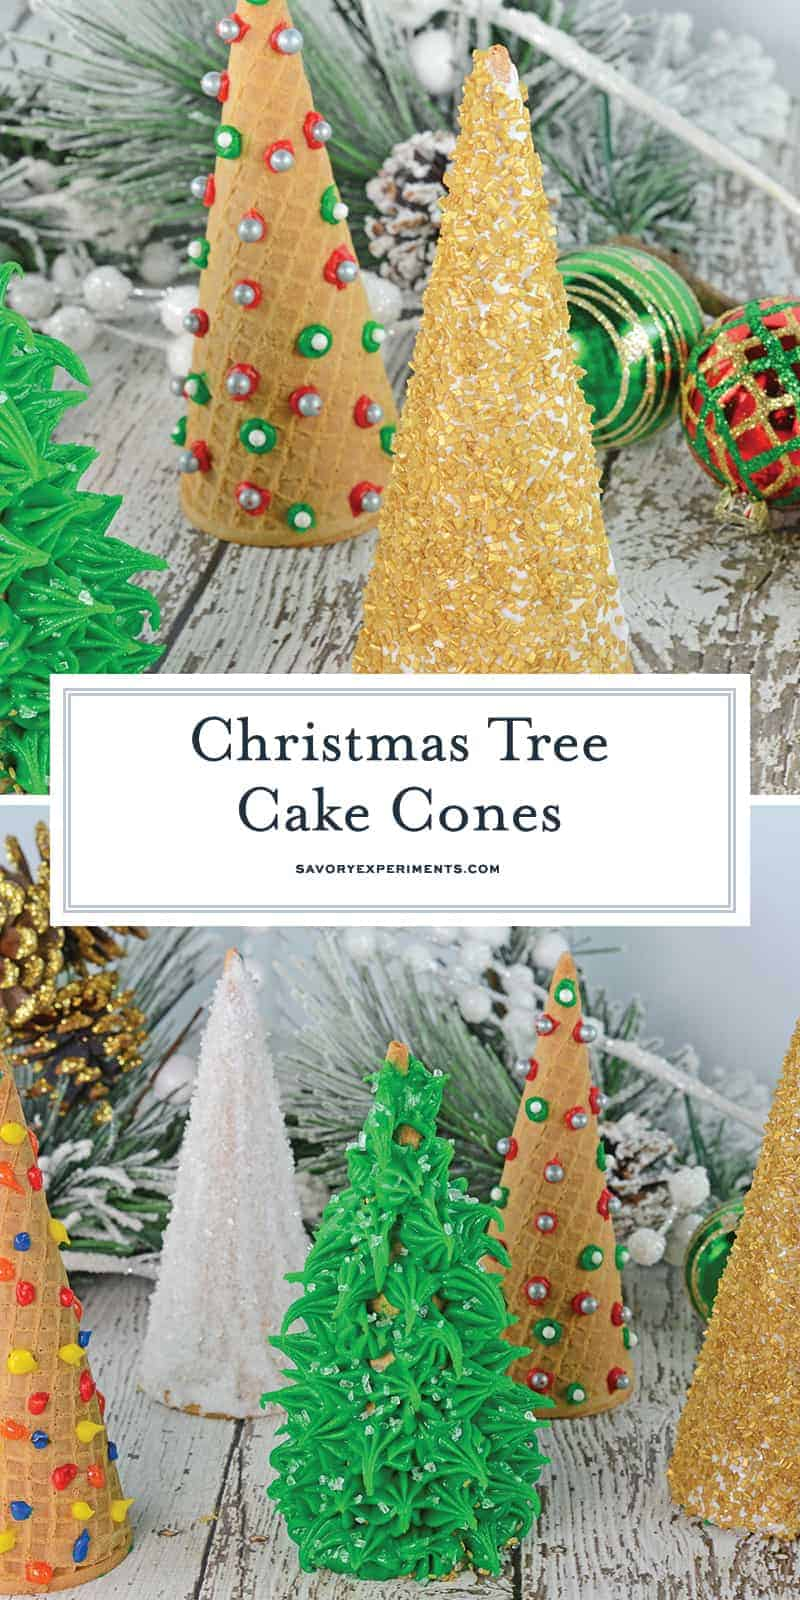 Christmas Tree Cake Cones are filled with cake and frosting and then festively decorated and a fun holiday activity for kids. #christmasactivitiesforkids #cakecones www.savoryexperiments.com